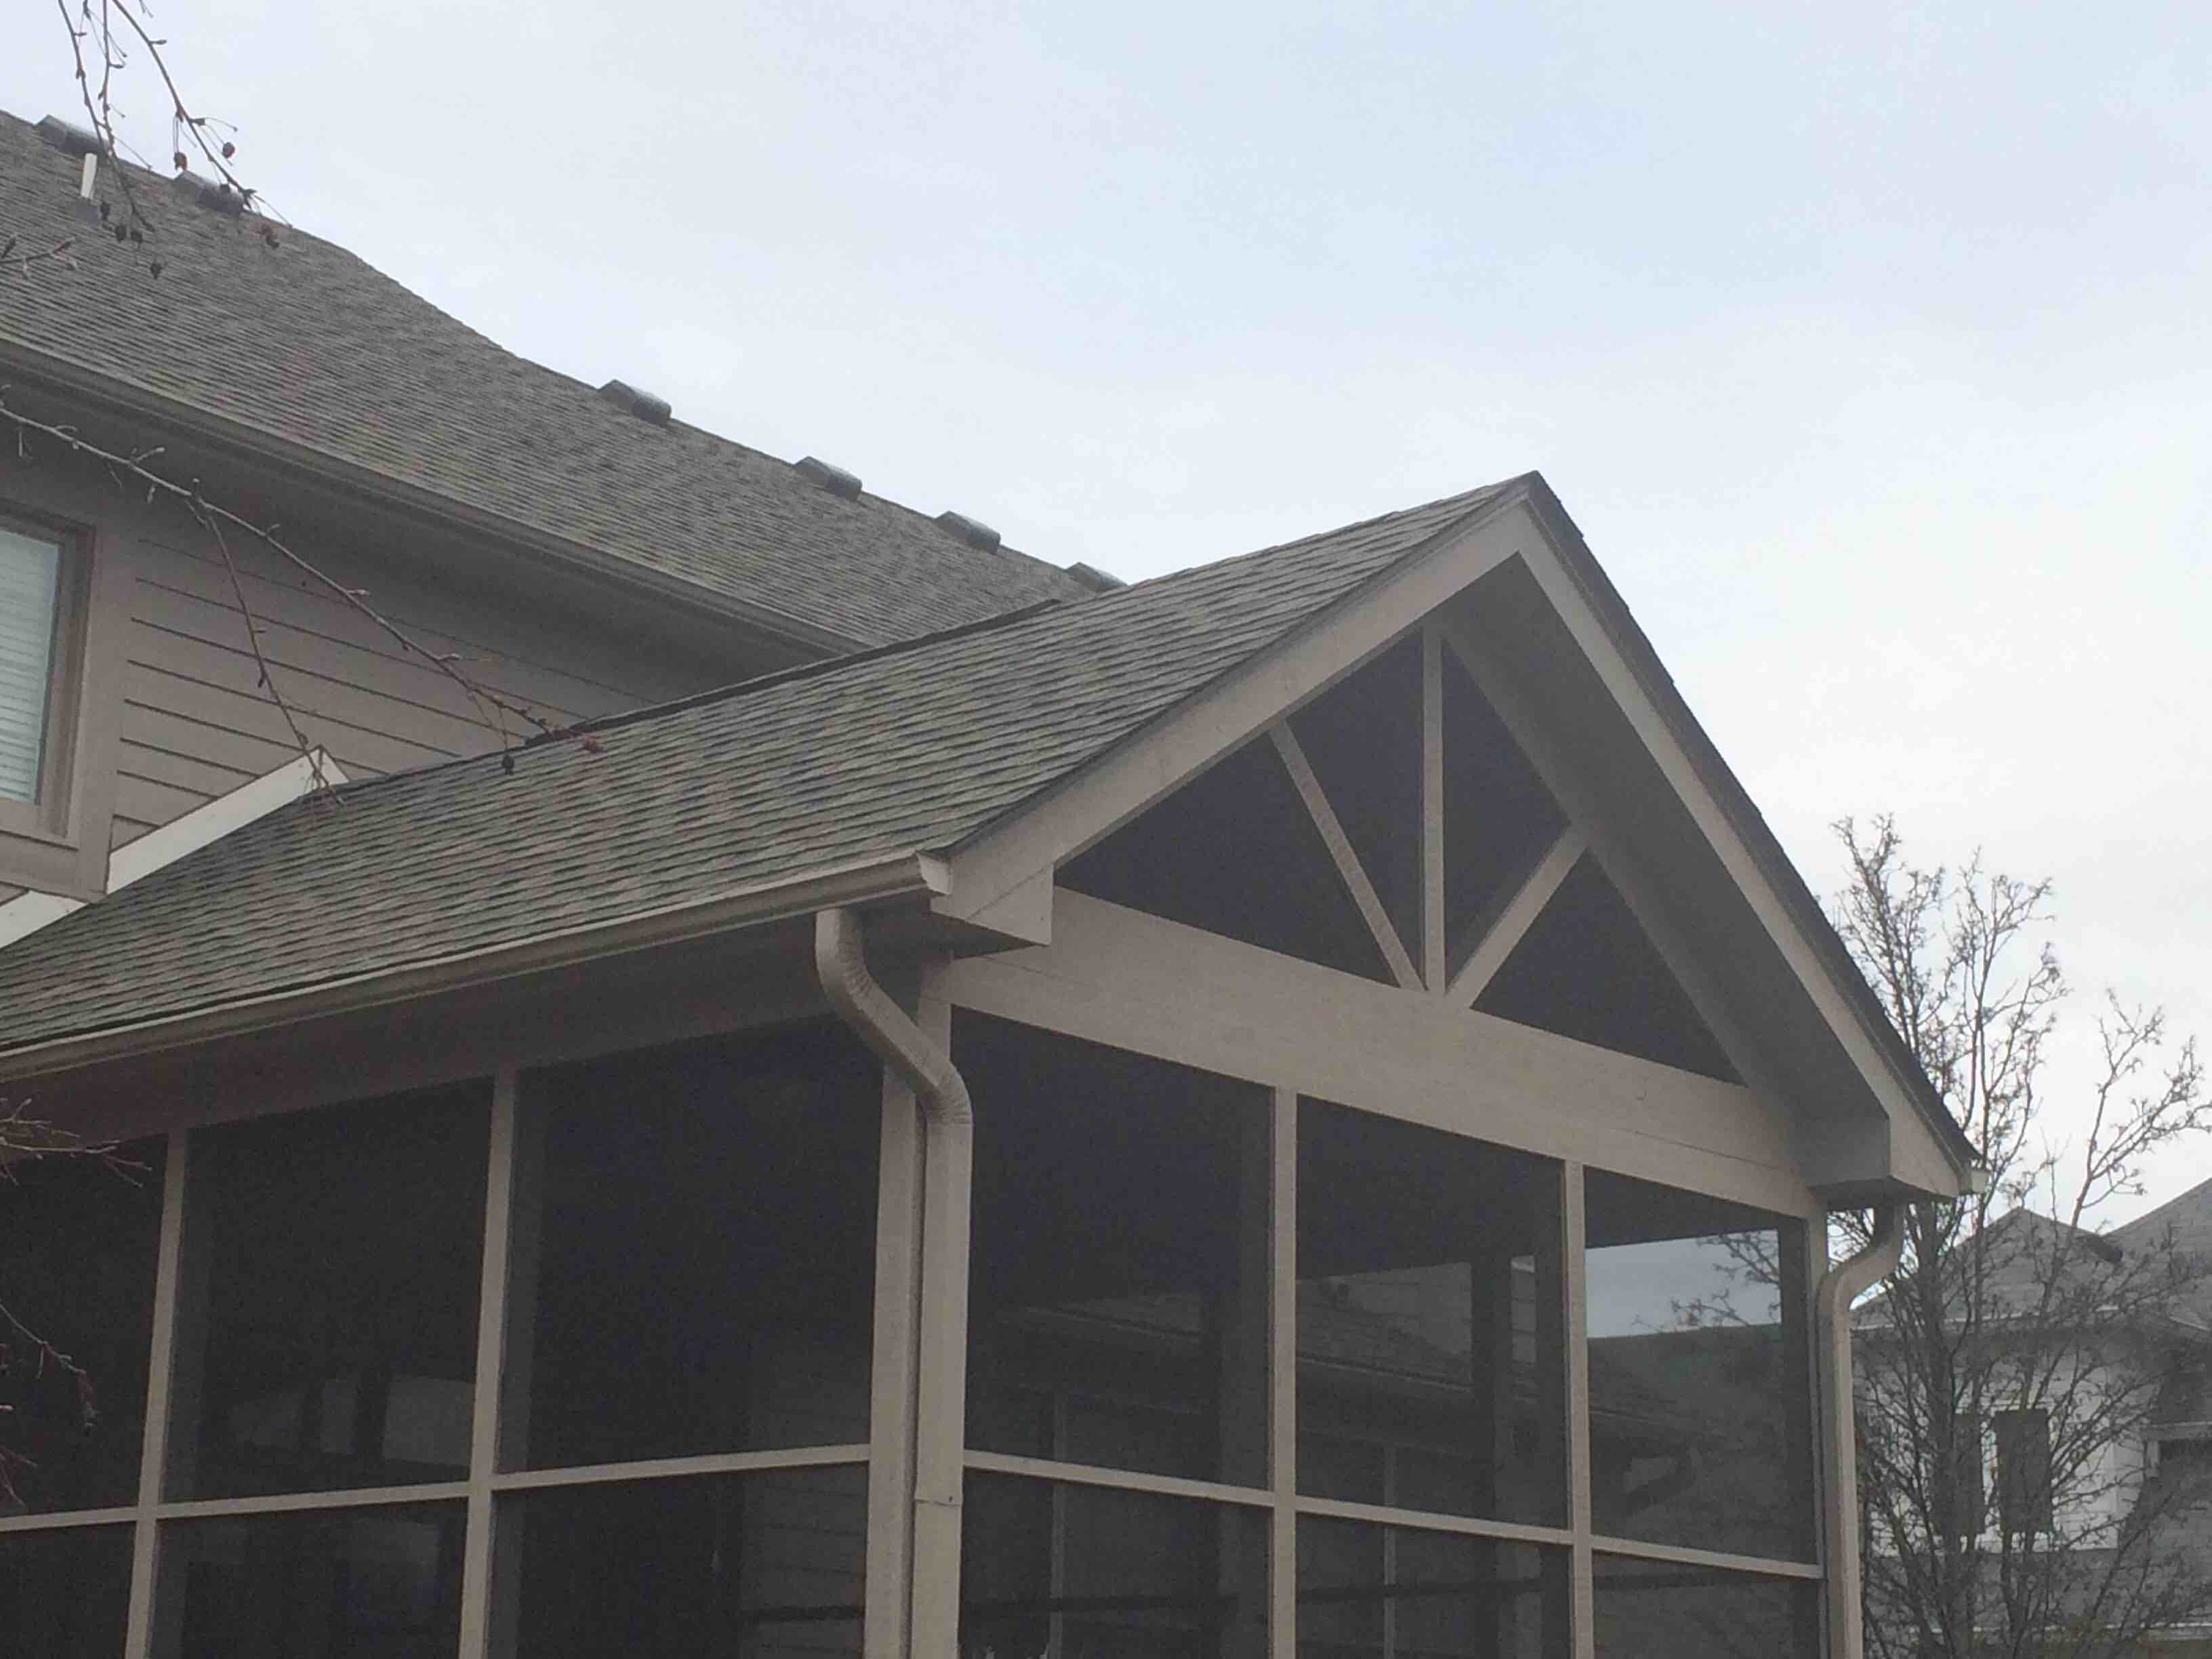 Roof Masters Amp Exteriors Llc Indianapolis In 46256